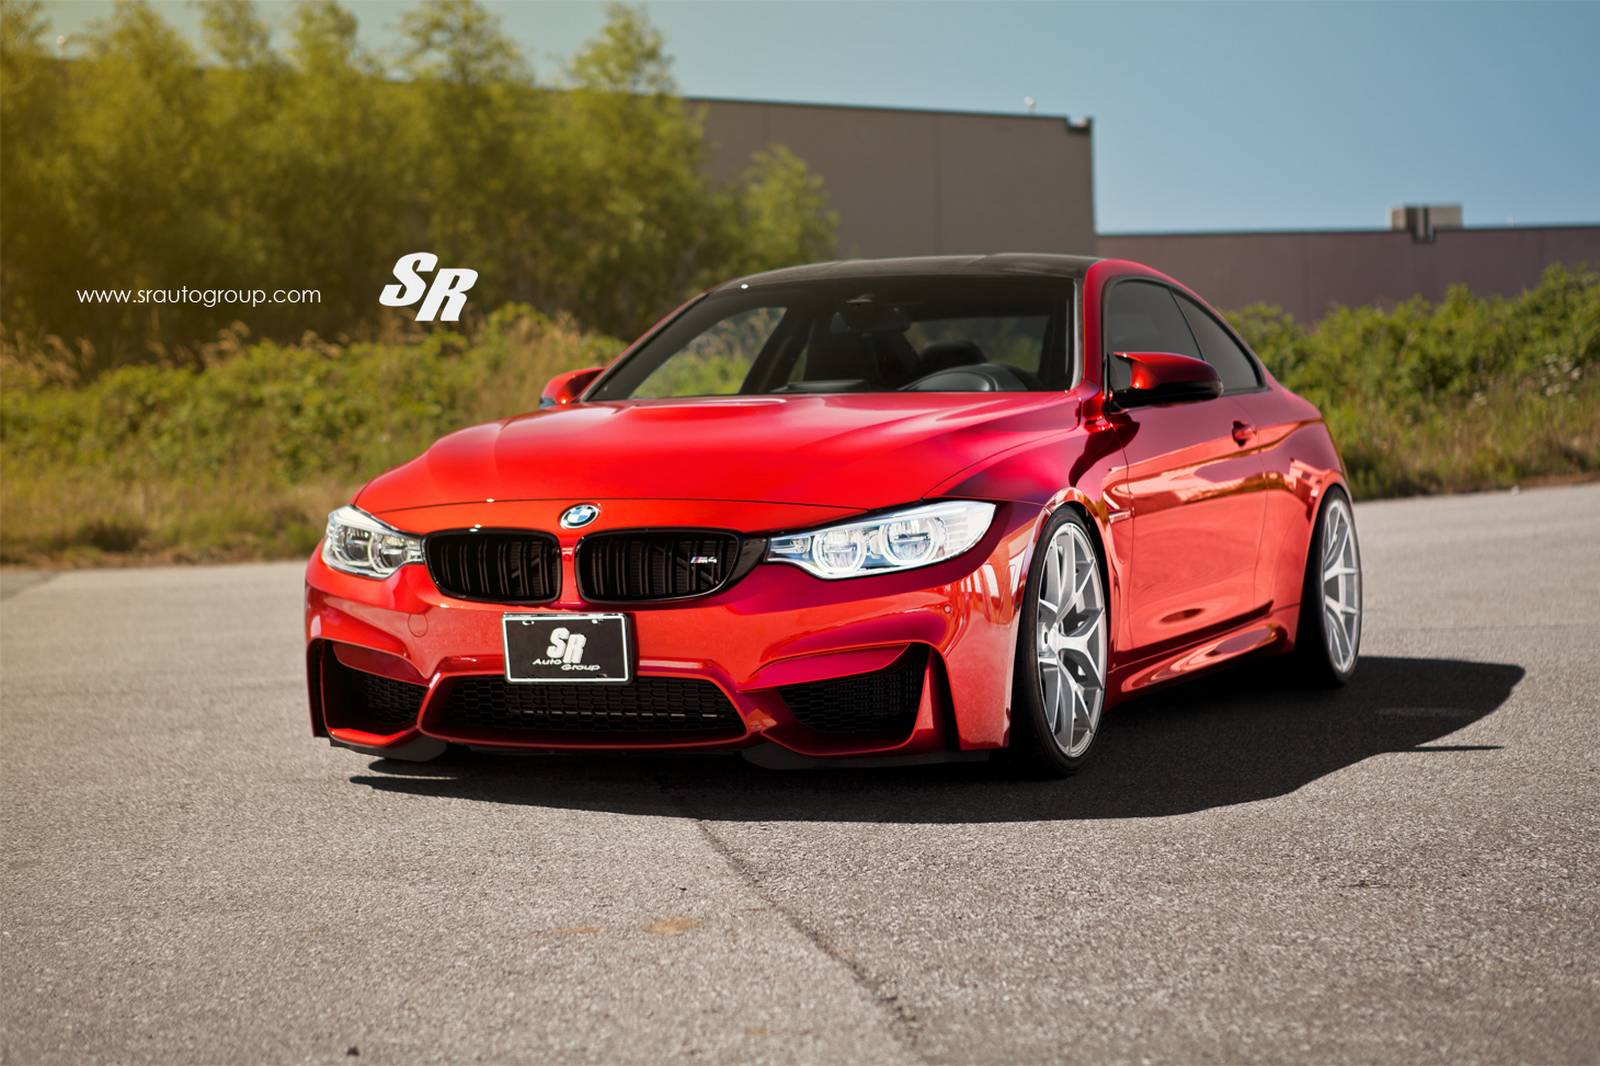 stunning red bmw m4 by sr auto group gtspirit. Black Bedroom Furniture Sets. Home Design Ideas